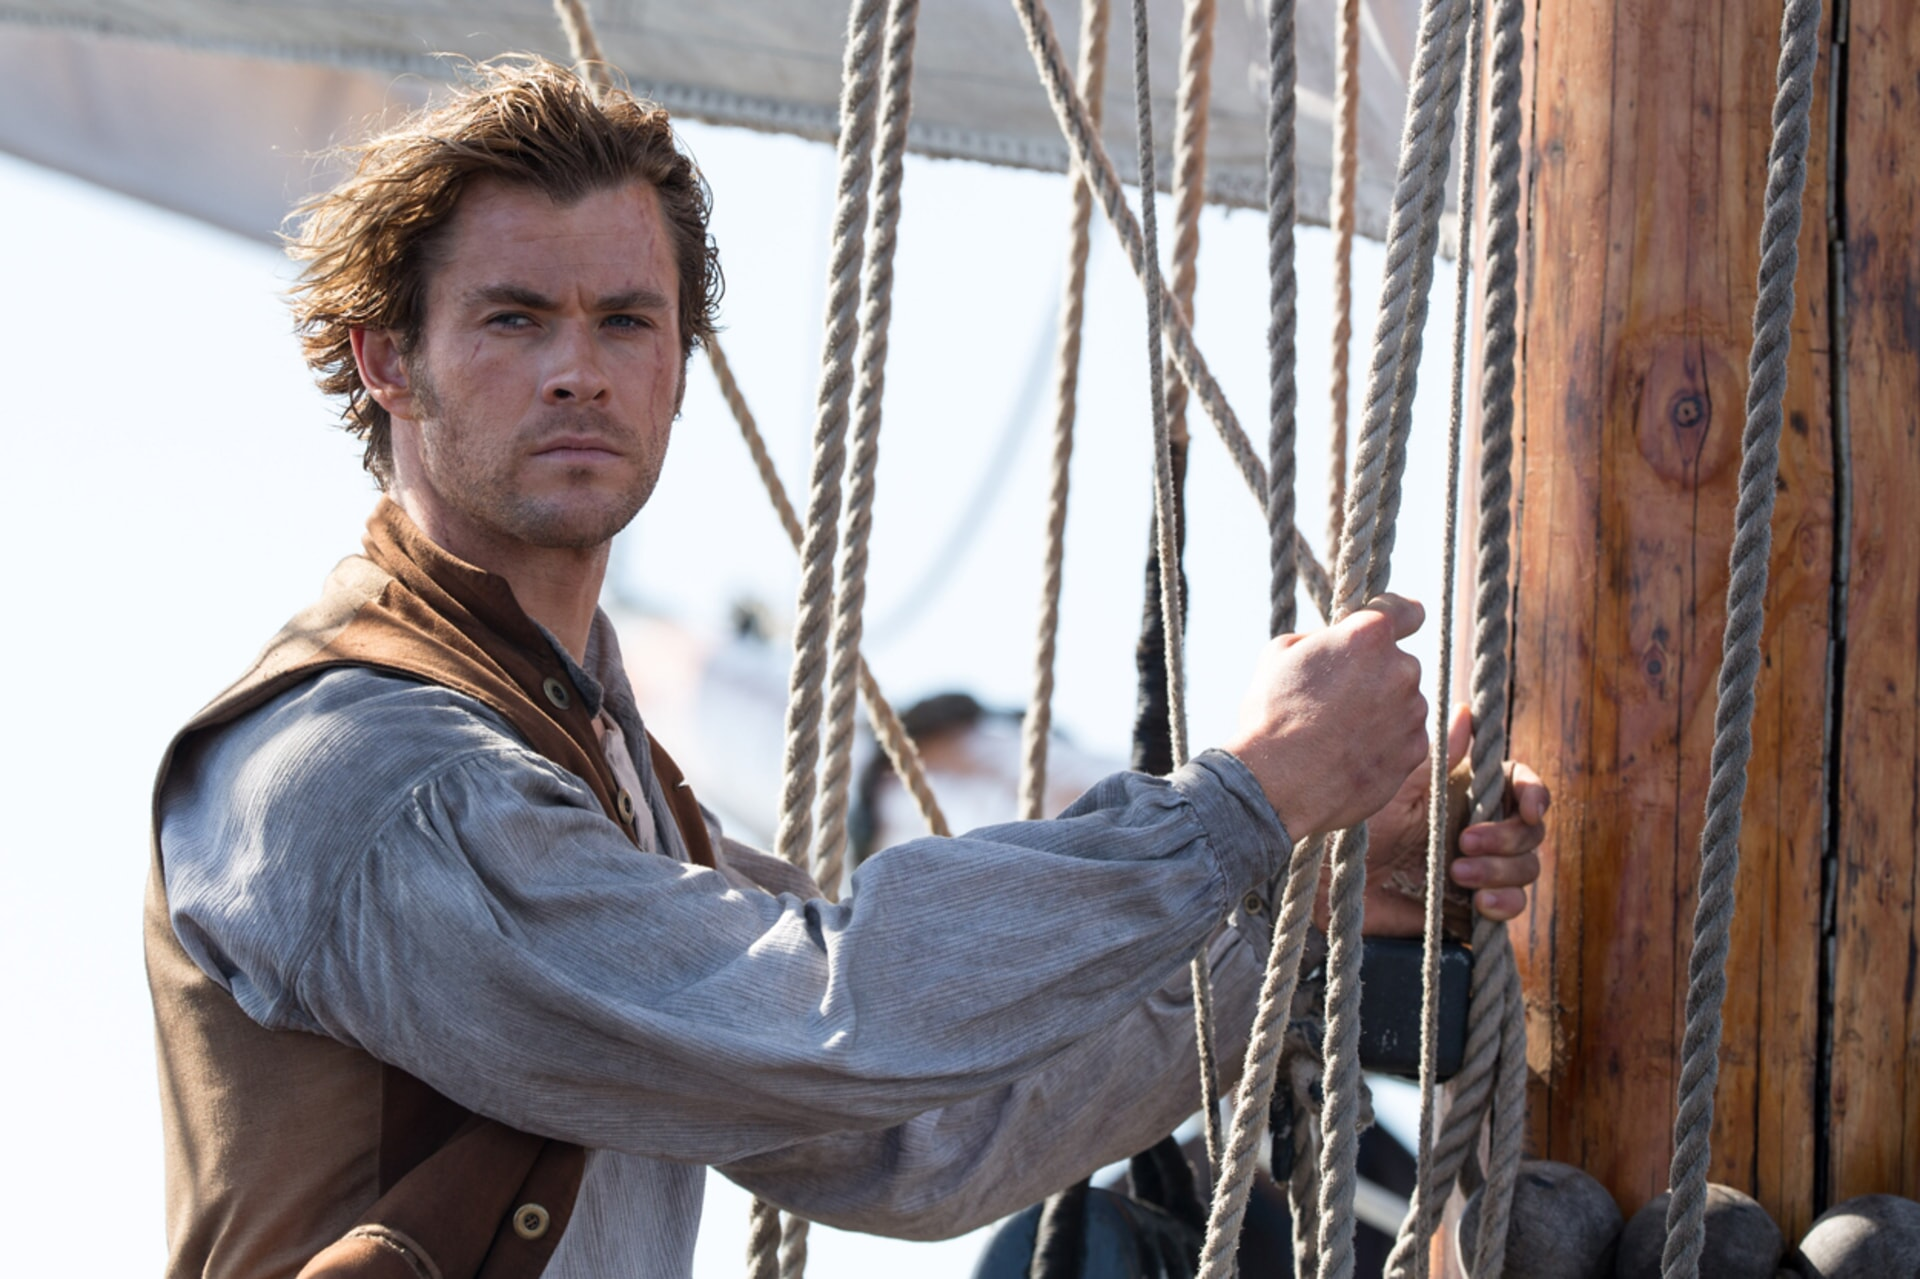 """CHRIS HEMSWORTH as Owen Chase in Warner Bros. Pictures' and Village Roadshow Pictures' action adventure """"IN THE HEART OF THE SEA,"""" distributed worldwide by Warner Bros. Pictures and in select territories by Village Roadshow Pictures."""